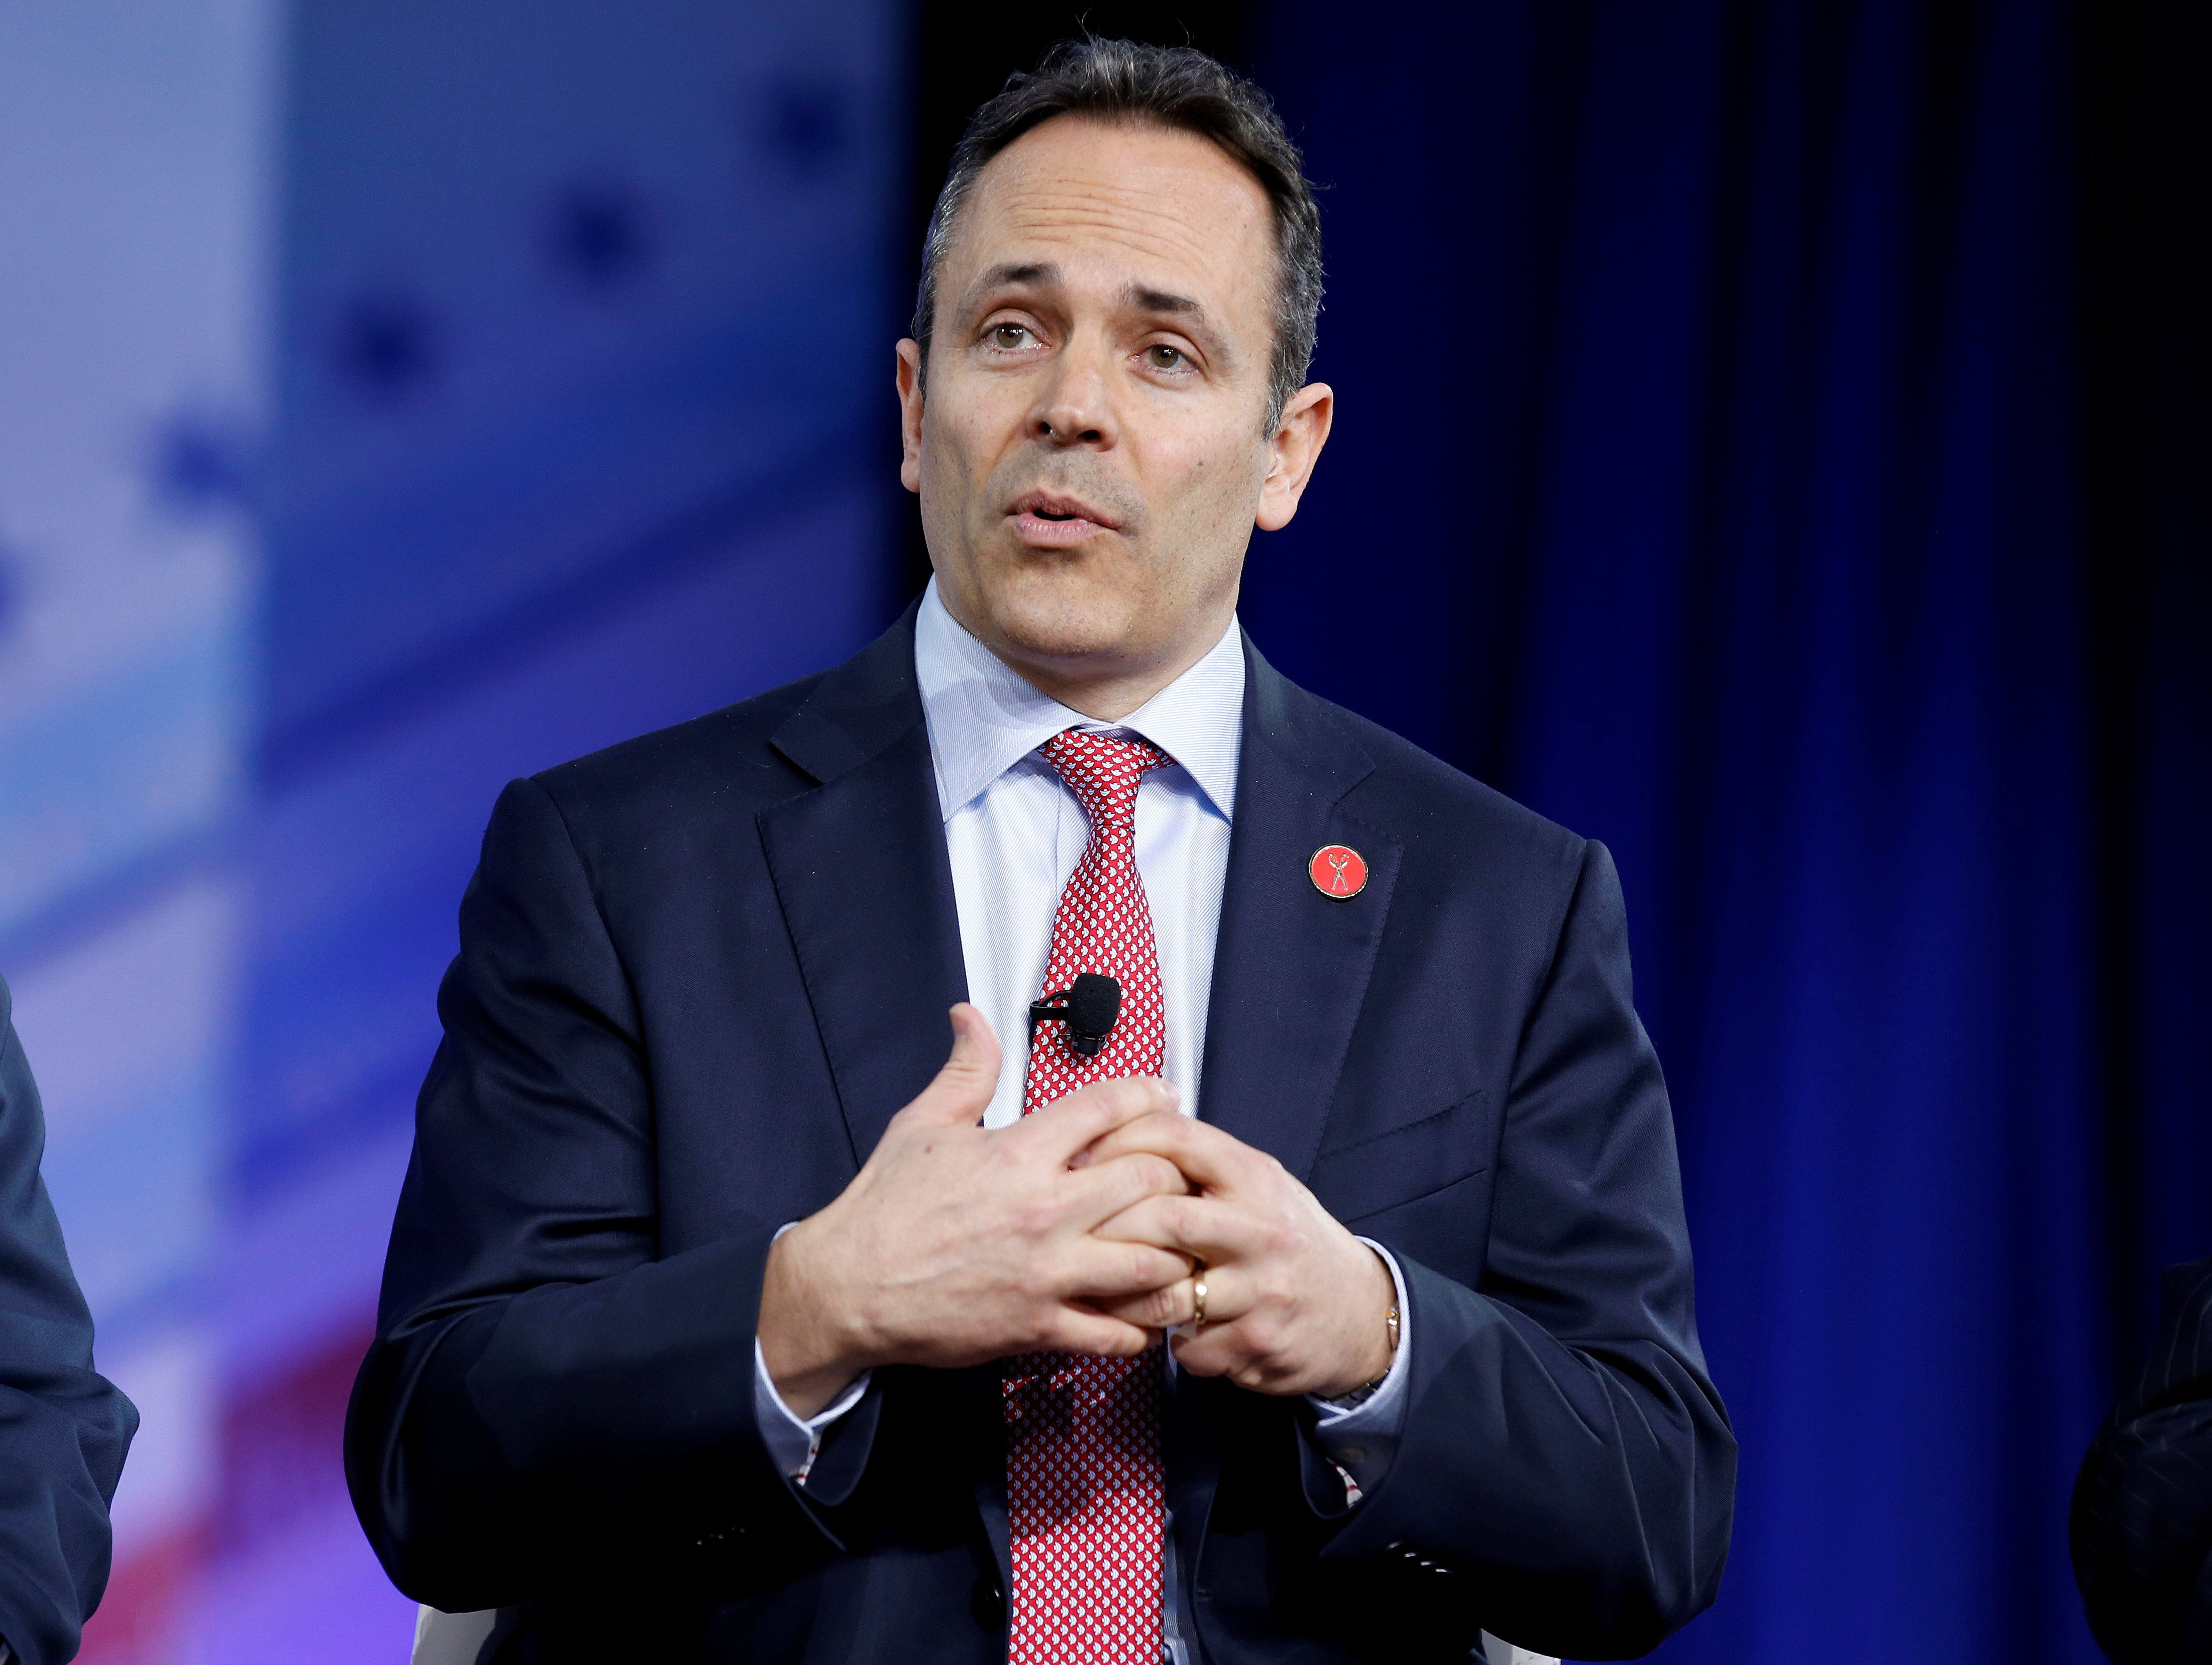 Republican Governor Matt Bevin of Kentucky speaks during the Conservative Political Action Conference (CPAC) in National Harbor, Maryland, U.S., February 23, 2017.      REUTERS/Joshua Roberts